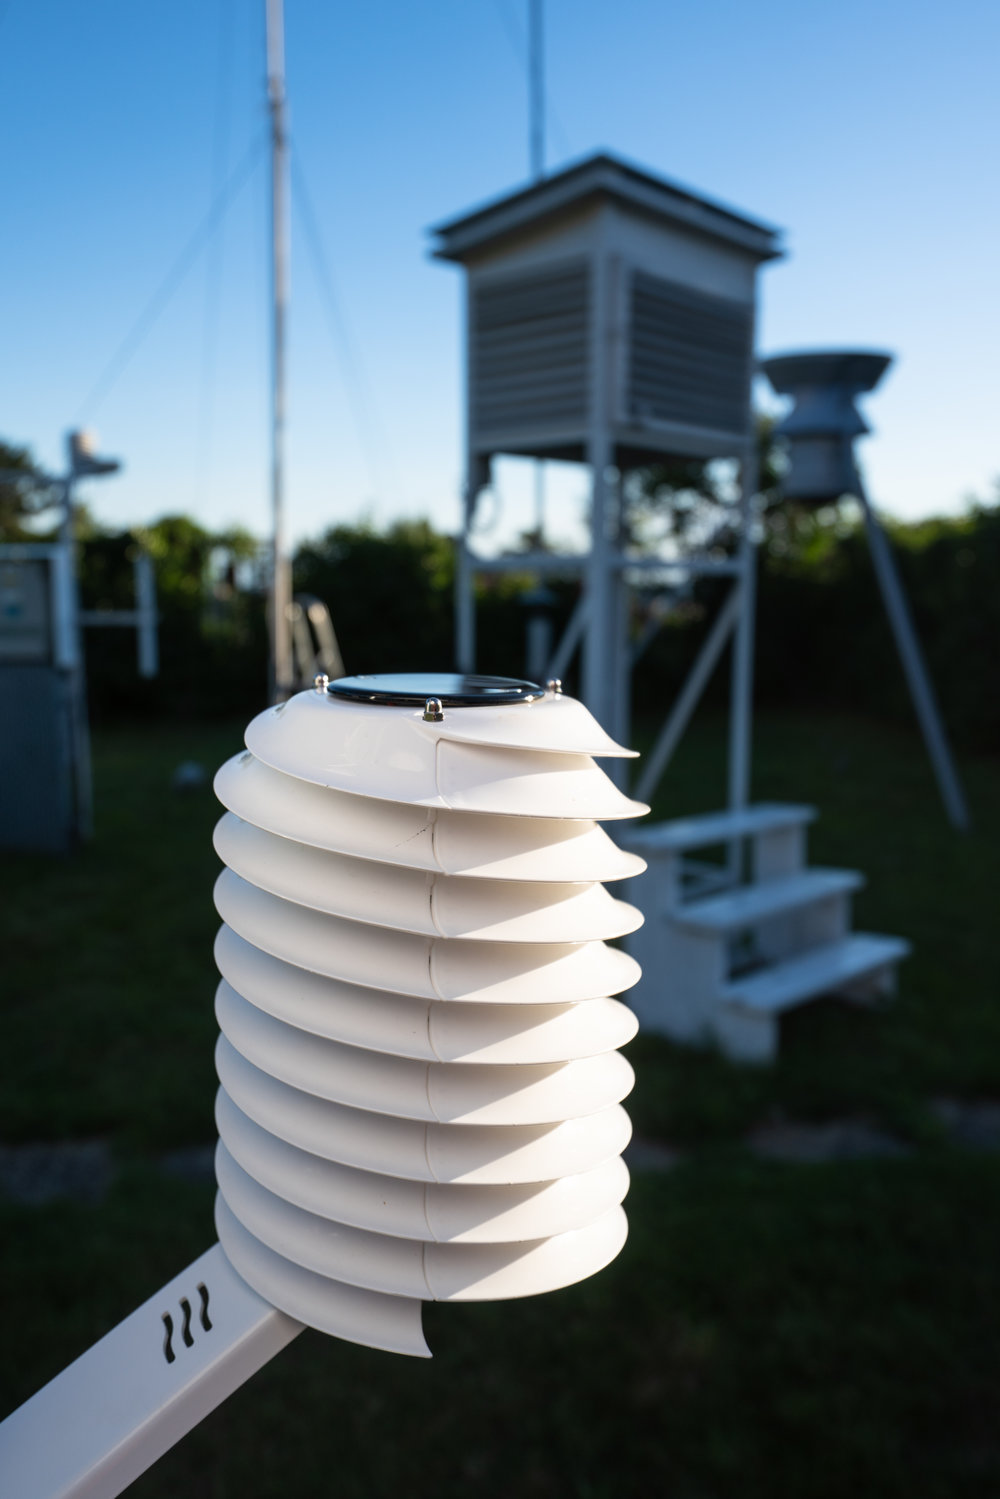 MeteoHelix weather station in a meteo garden of professional meteorological instruments.